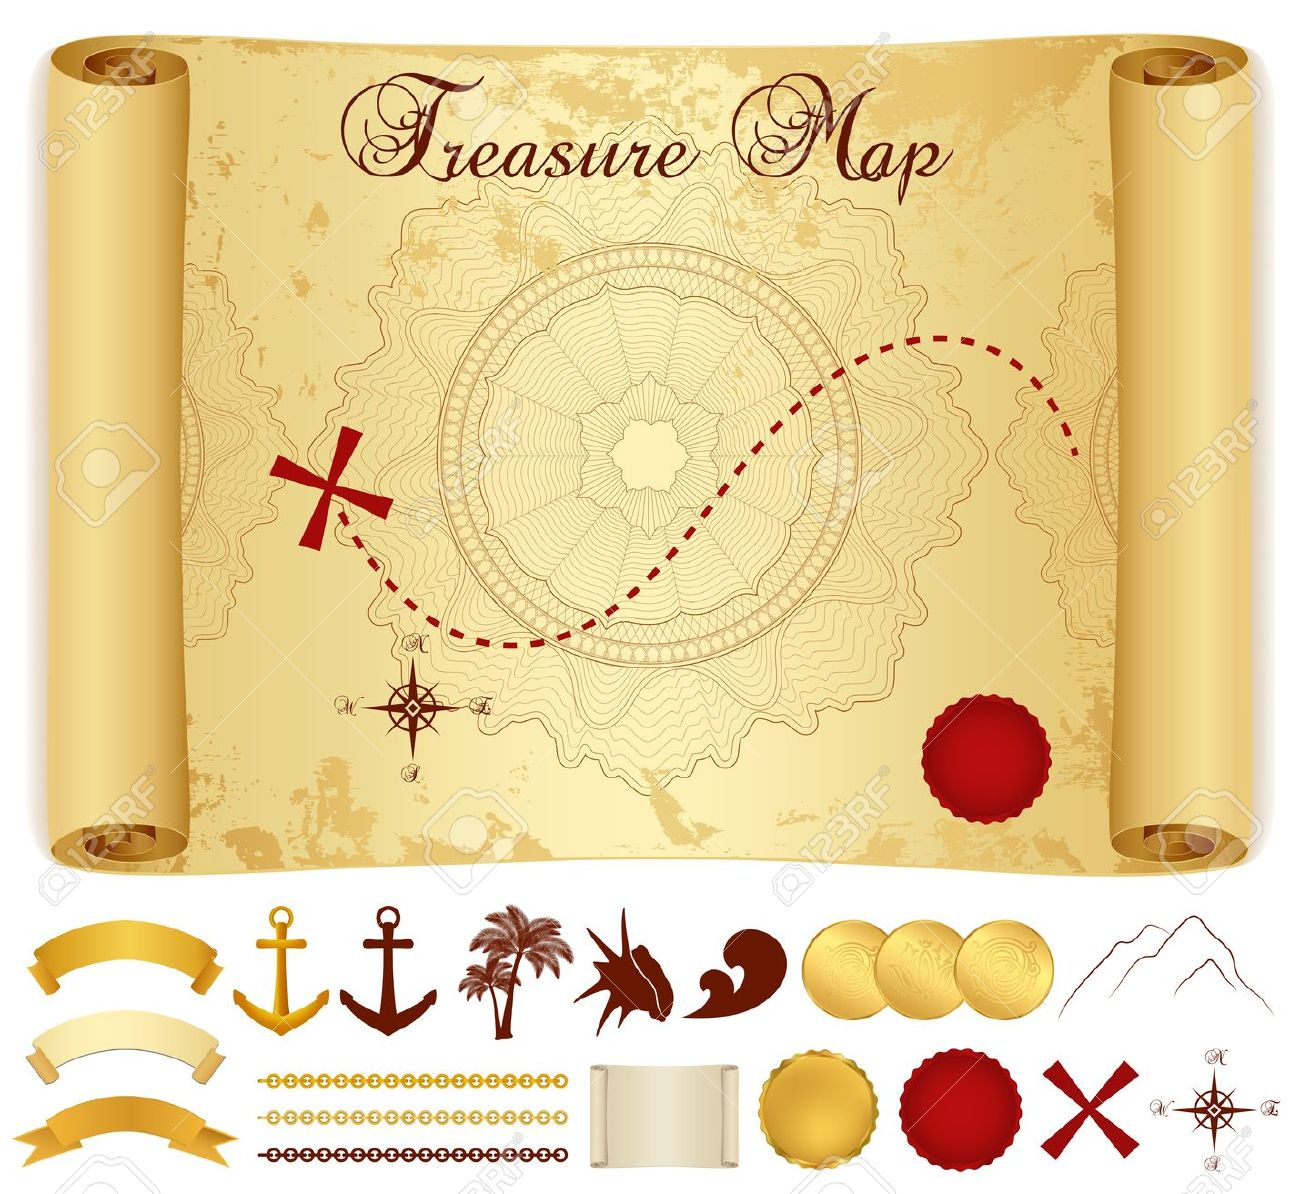 Blank Treasure Map Pirate Images Stock Pictures Royalty Free Goat.